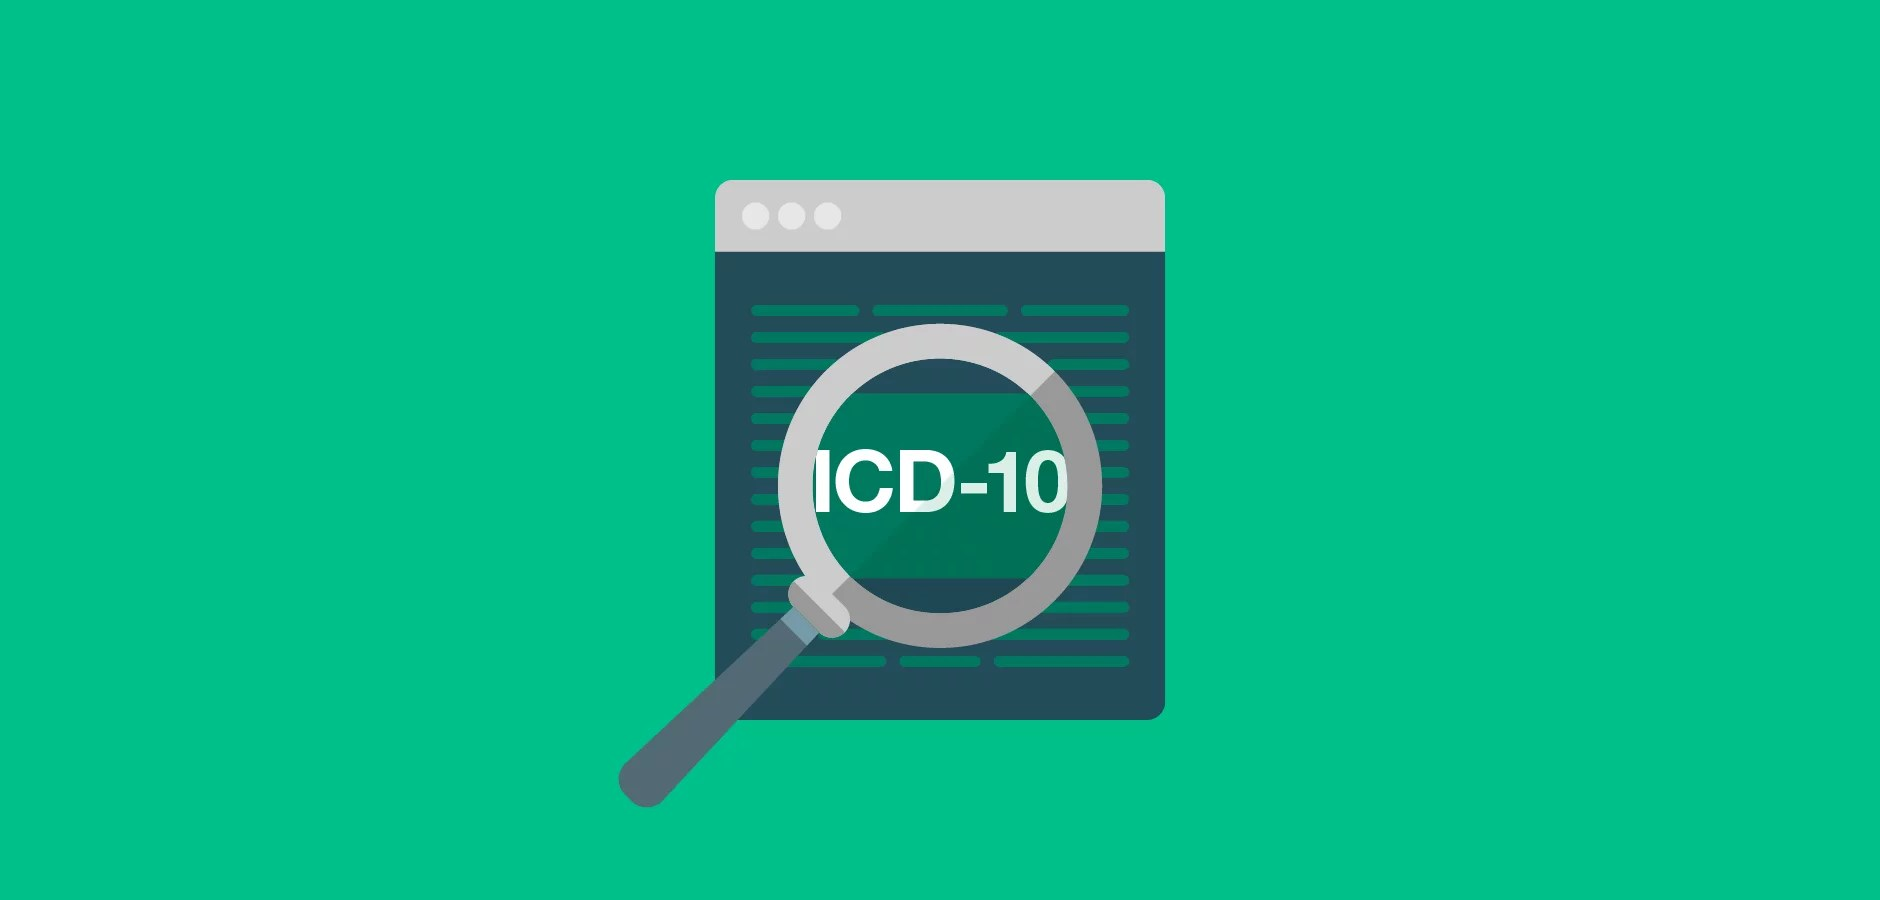 Icd 10 Codes Reviews Of The Best Icd10 Coding Tools